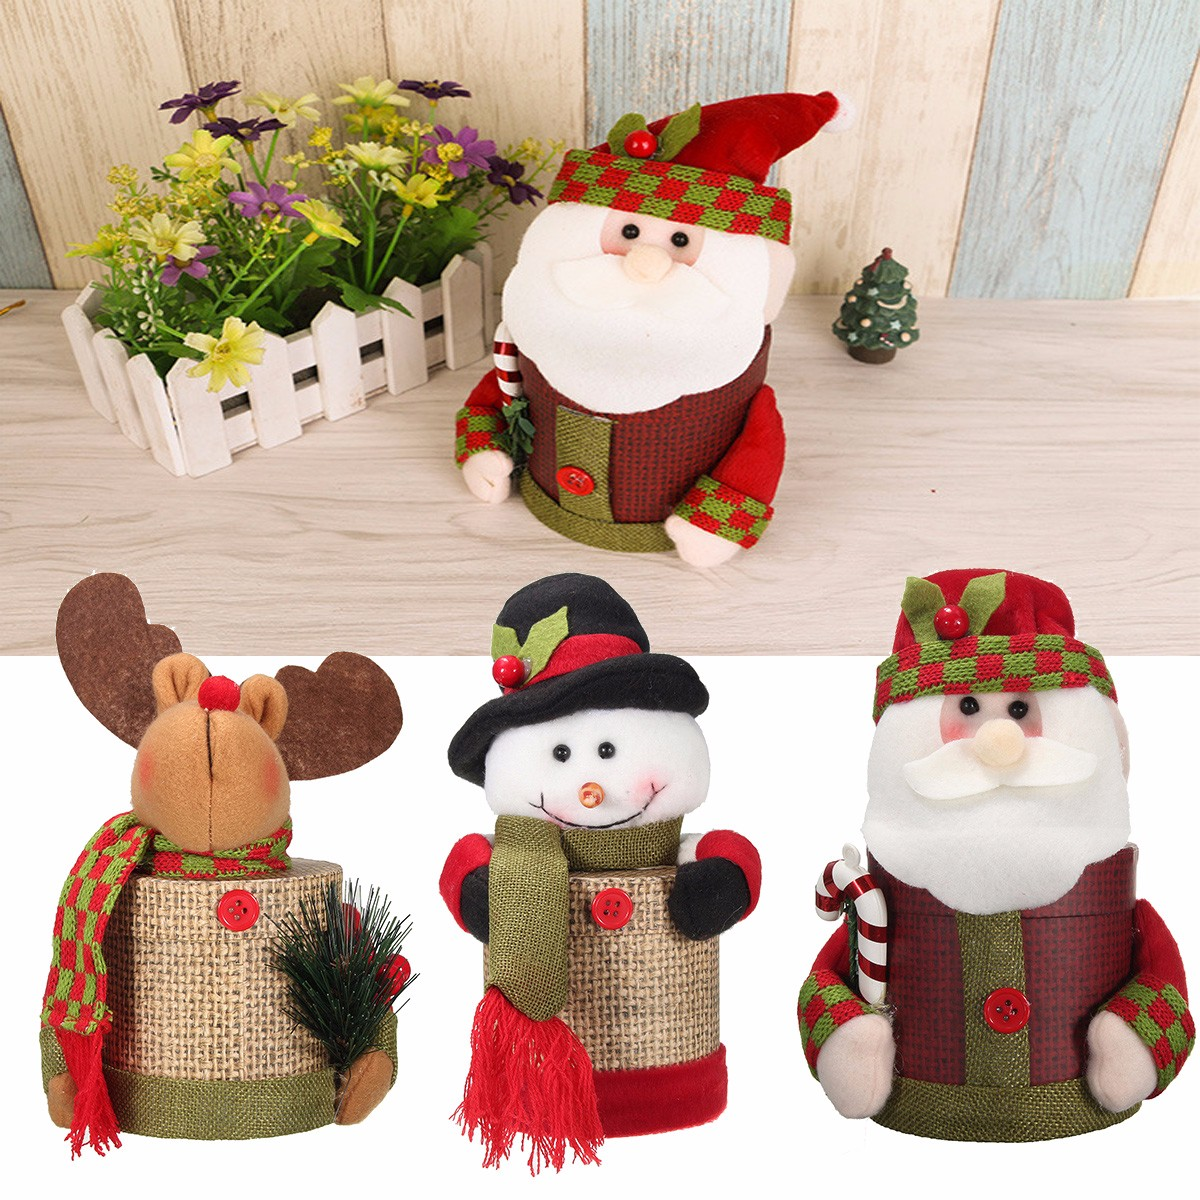 Santa Claus / Snowman / Elk Santa Claus Gift Box Christmas Candy Box Decorations - Photo: 1